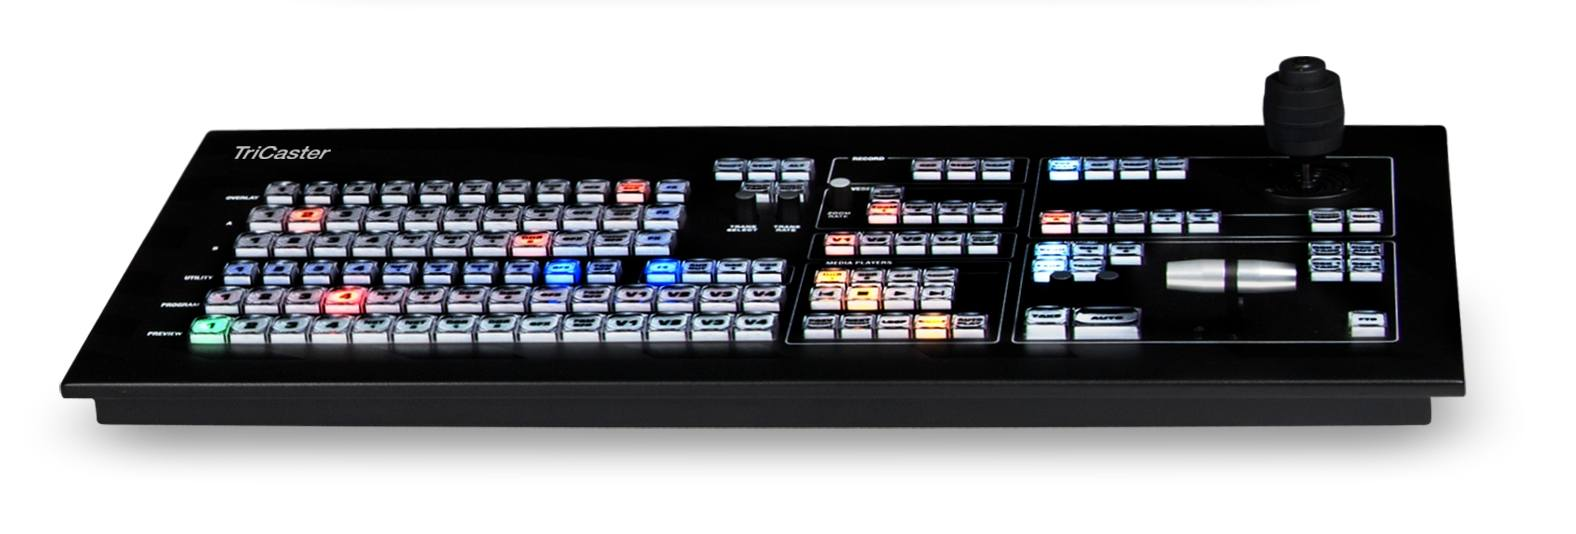 TriCaster 460CS Control Surface